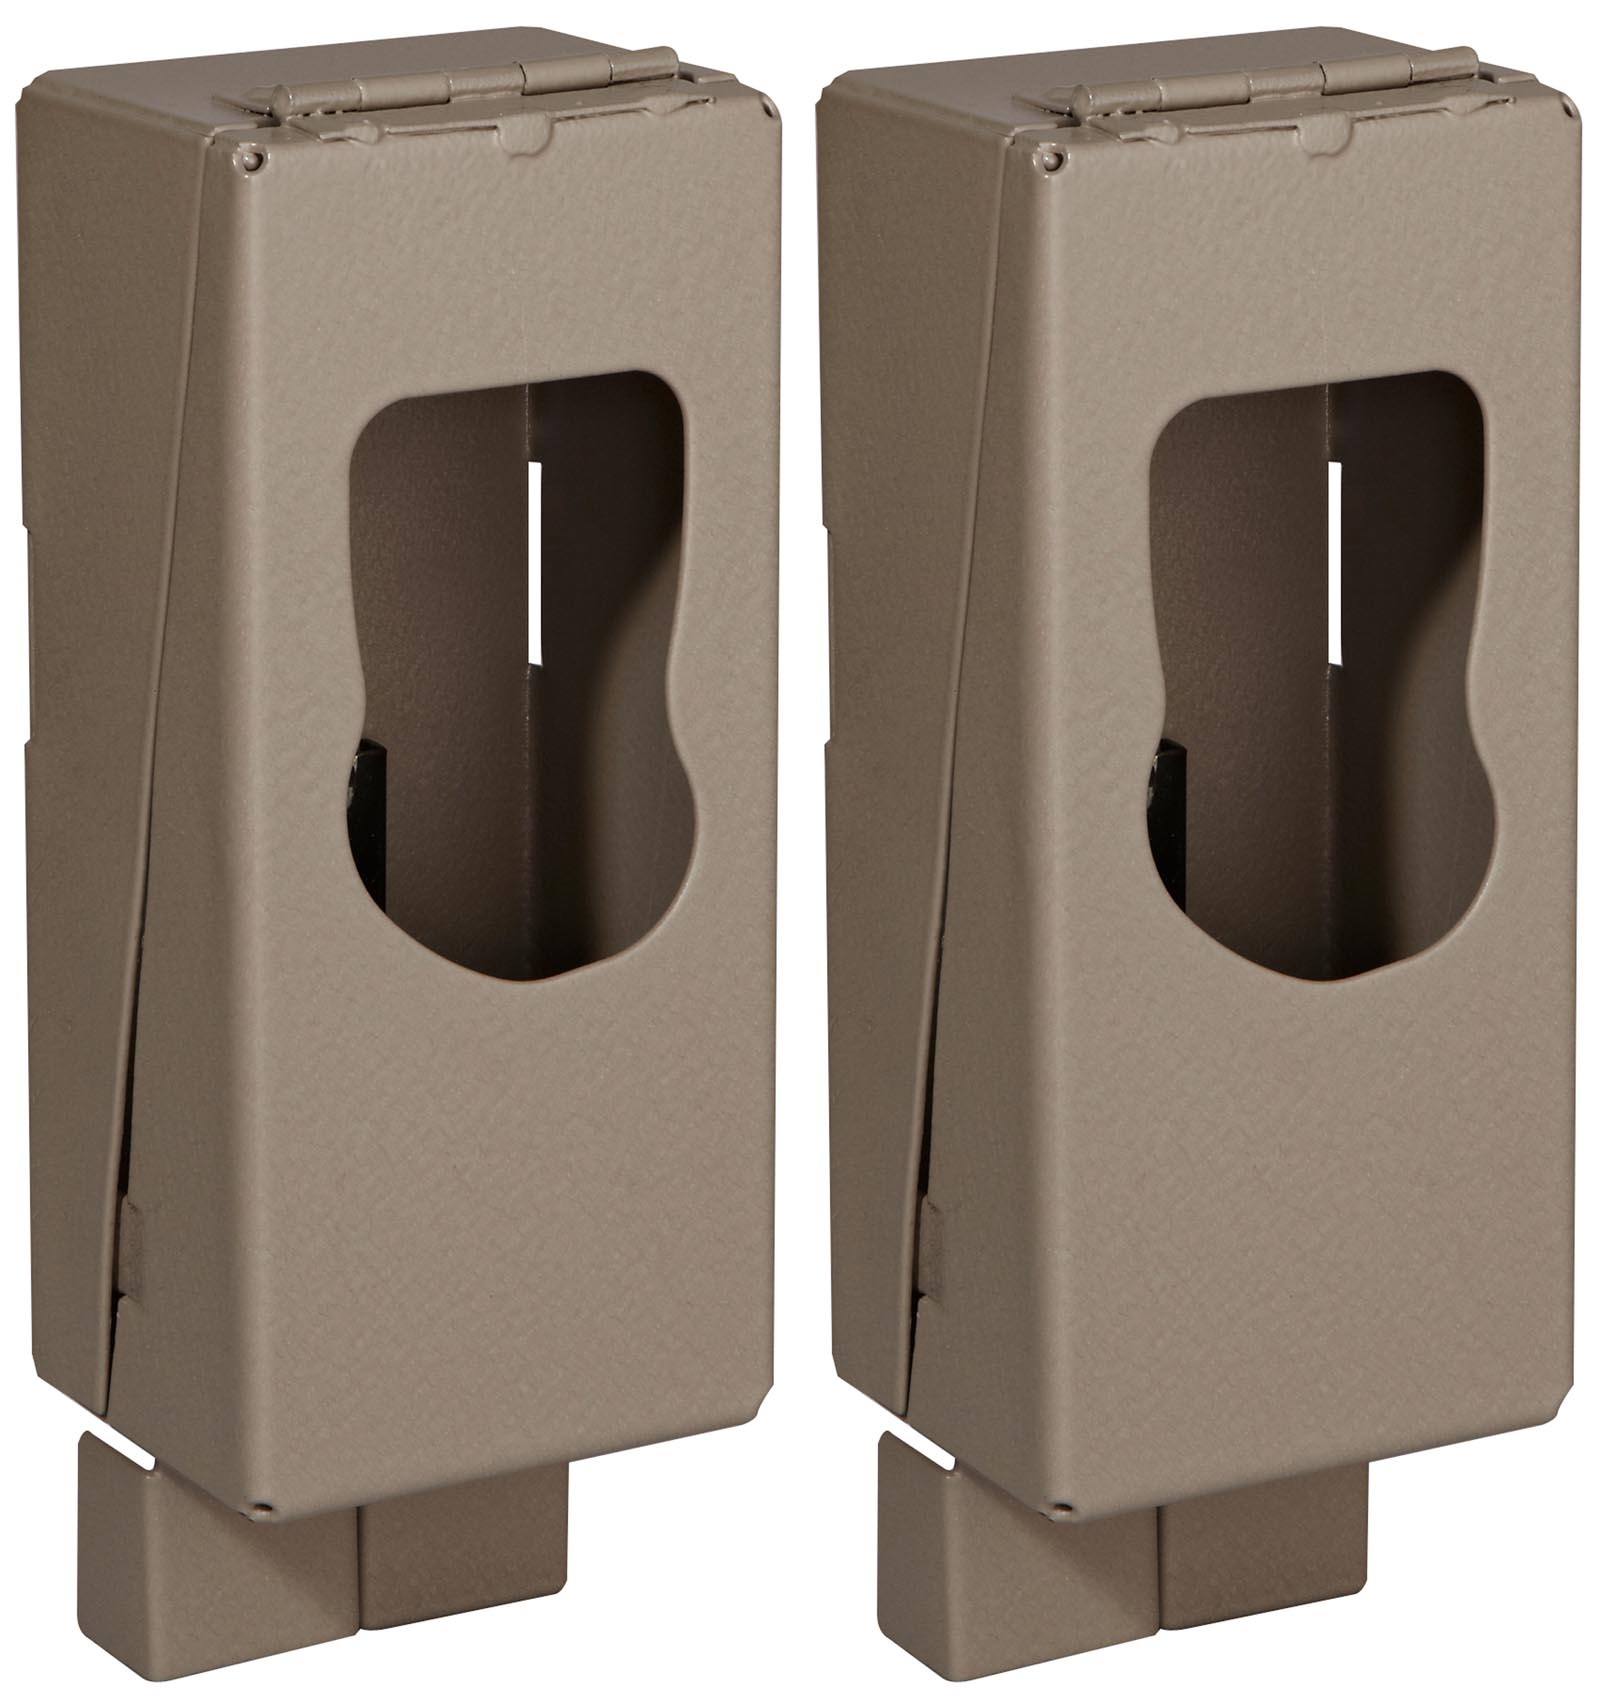 (2) CUDDEBACK CuddeSafe 3365 F Series Hunting Game Camera Metal Security Cases